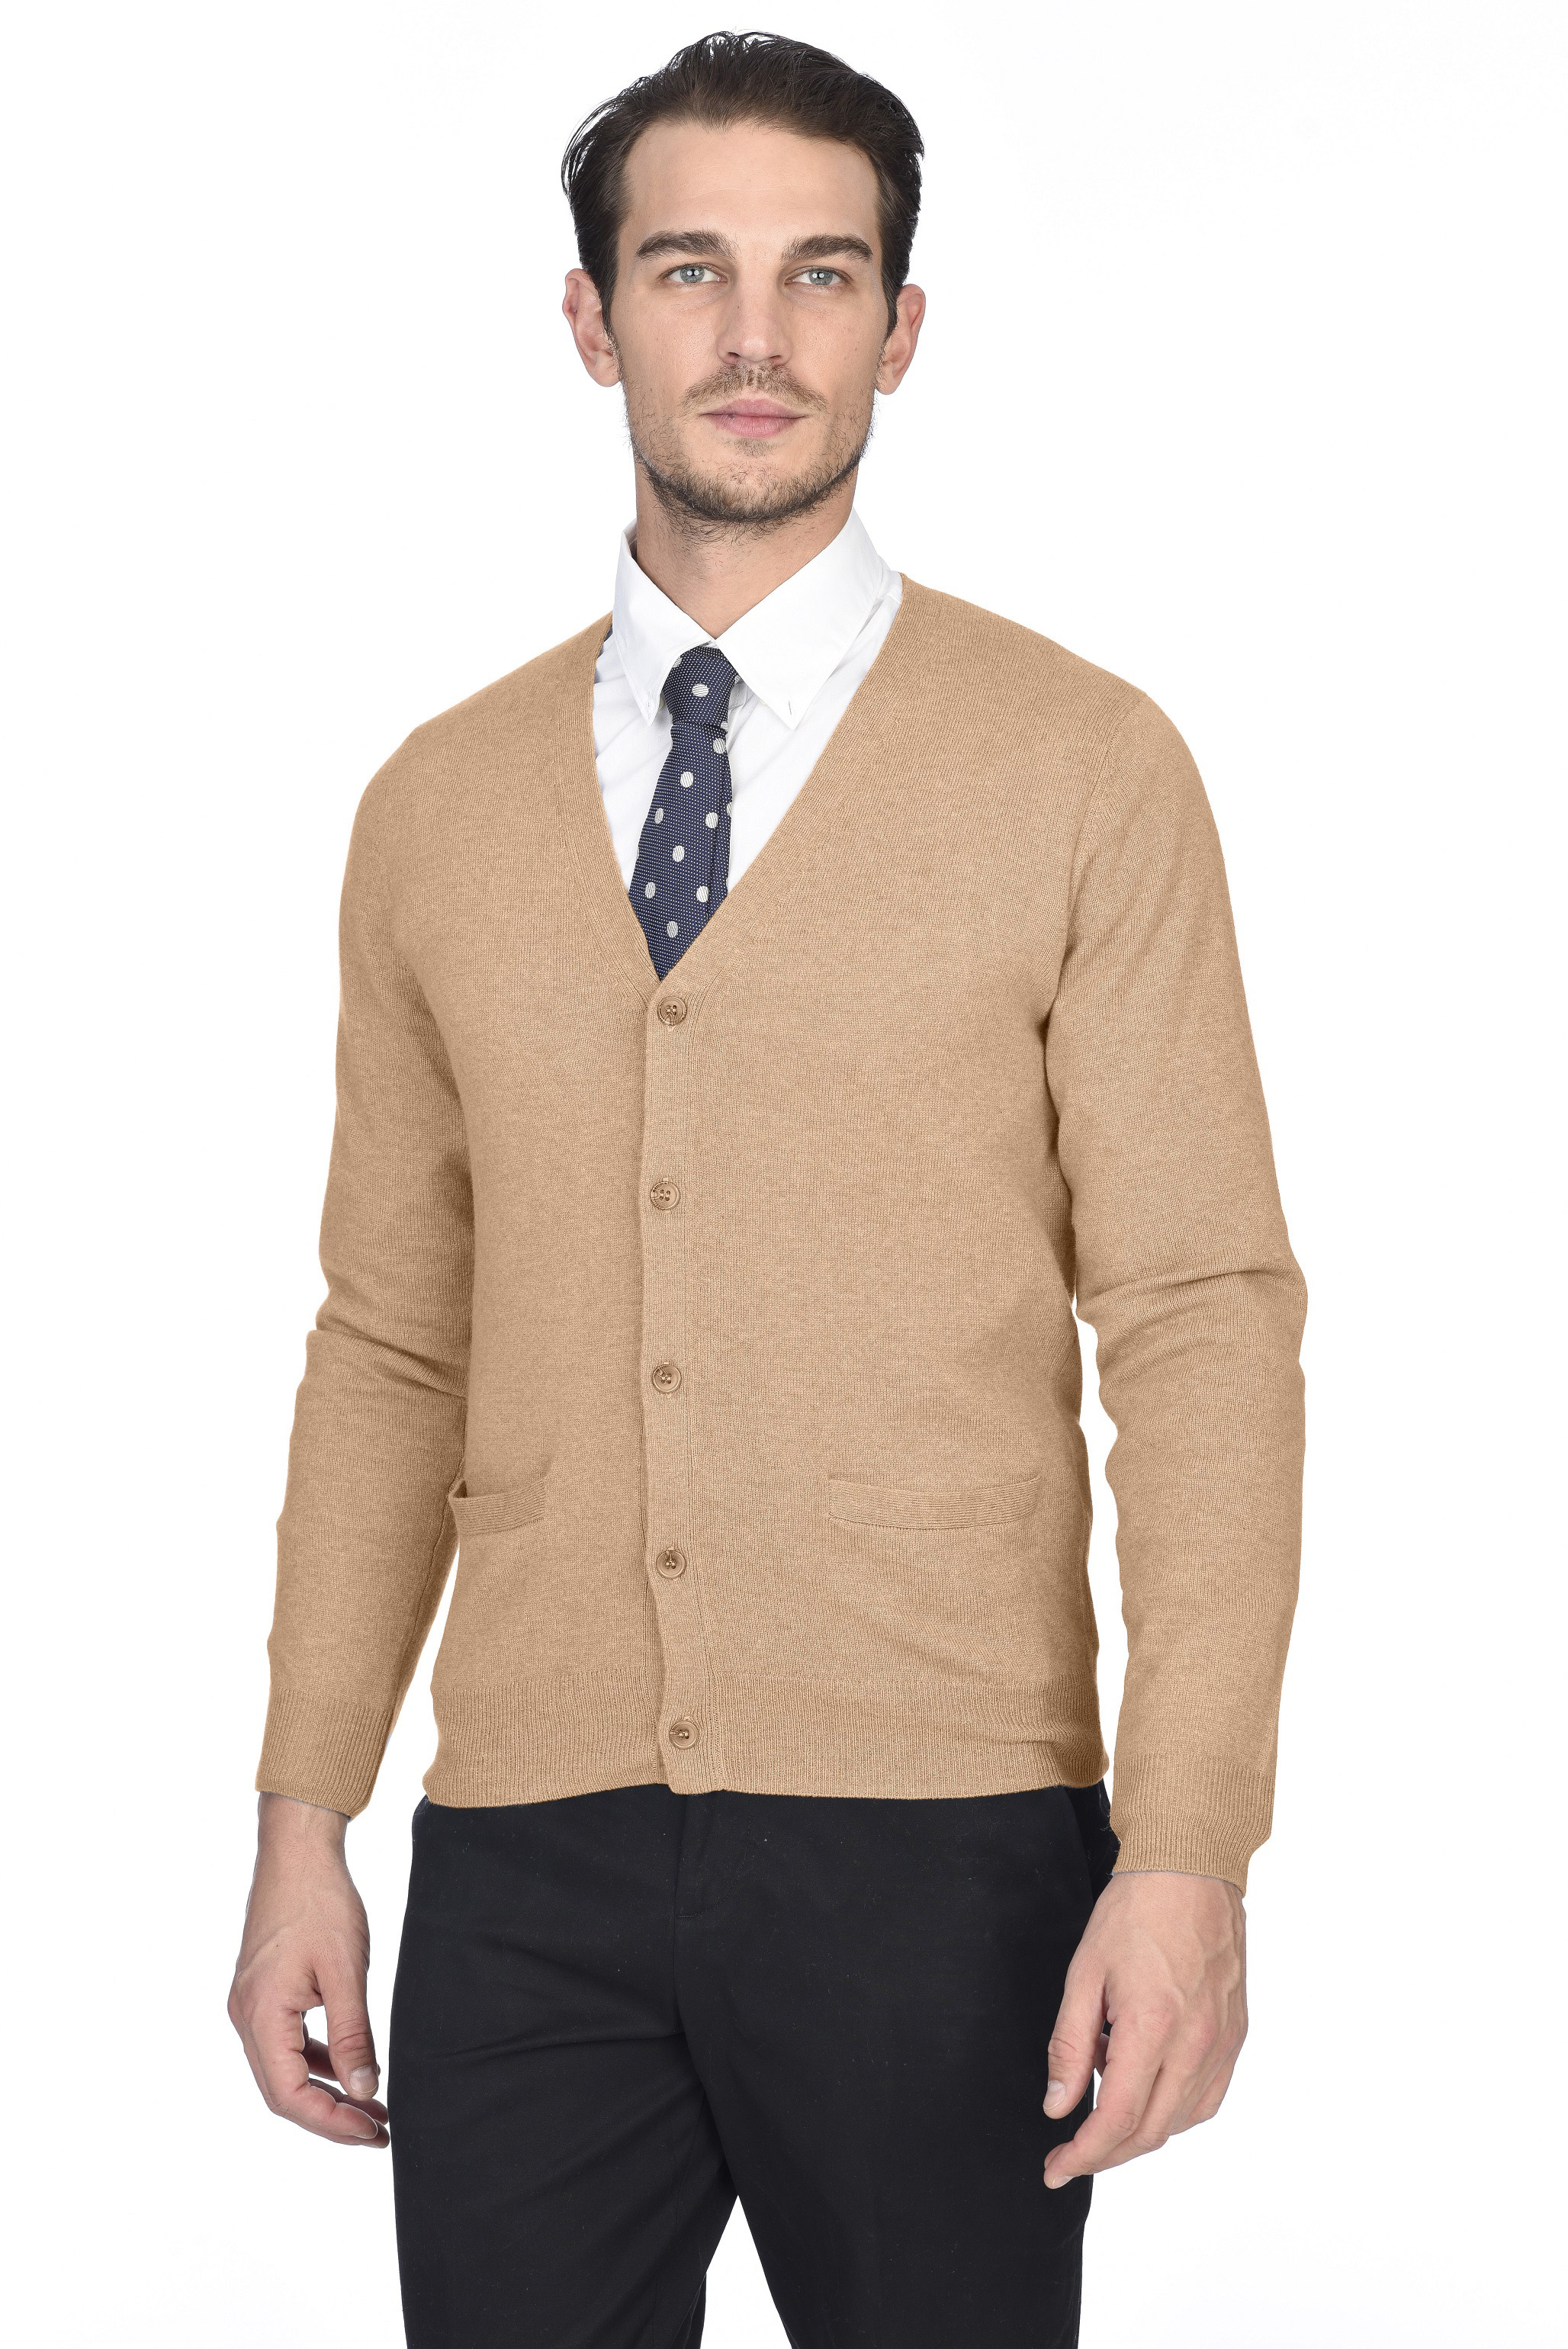 State Cashmere Men's 100% Pure Pure Pure Cashmere Button Front Long Sleeve Cardigan 6e6f54